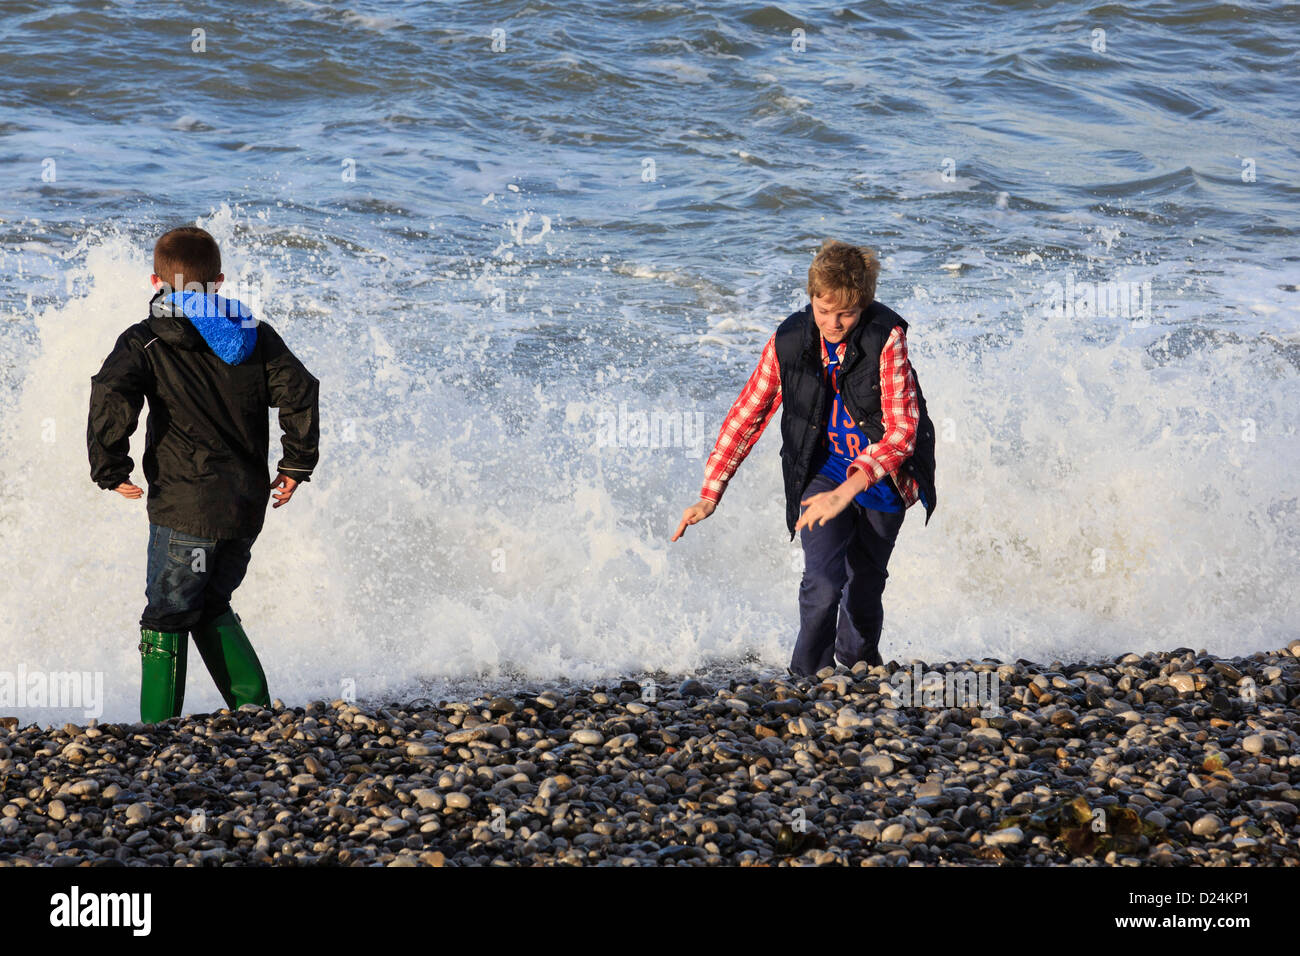 Two boys enjoy playing by the splashing waves at water's edge on Penmon beach on Isle of Anglesey, North Wales, Stock Photo